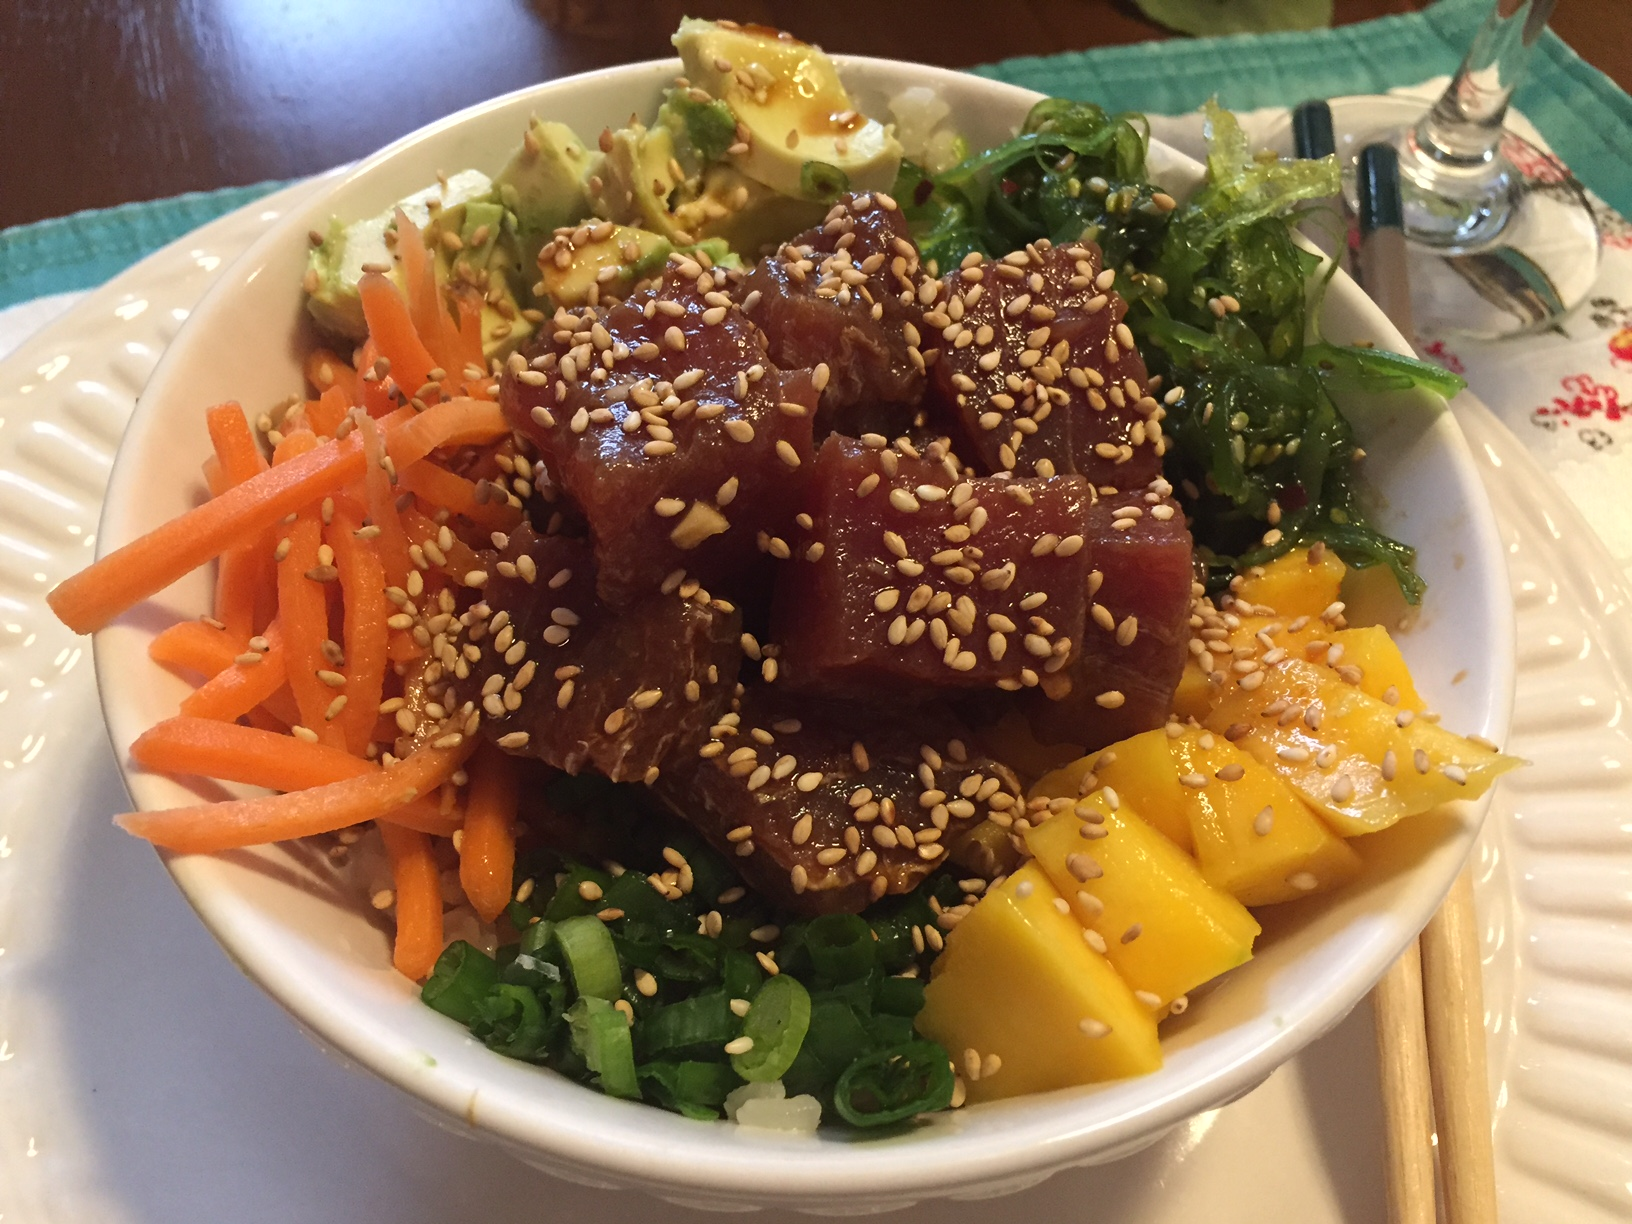 A DIY tuna poke bowl is a delicious sushi alternative